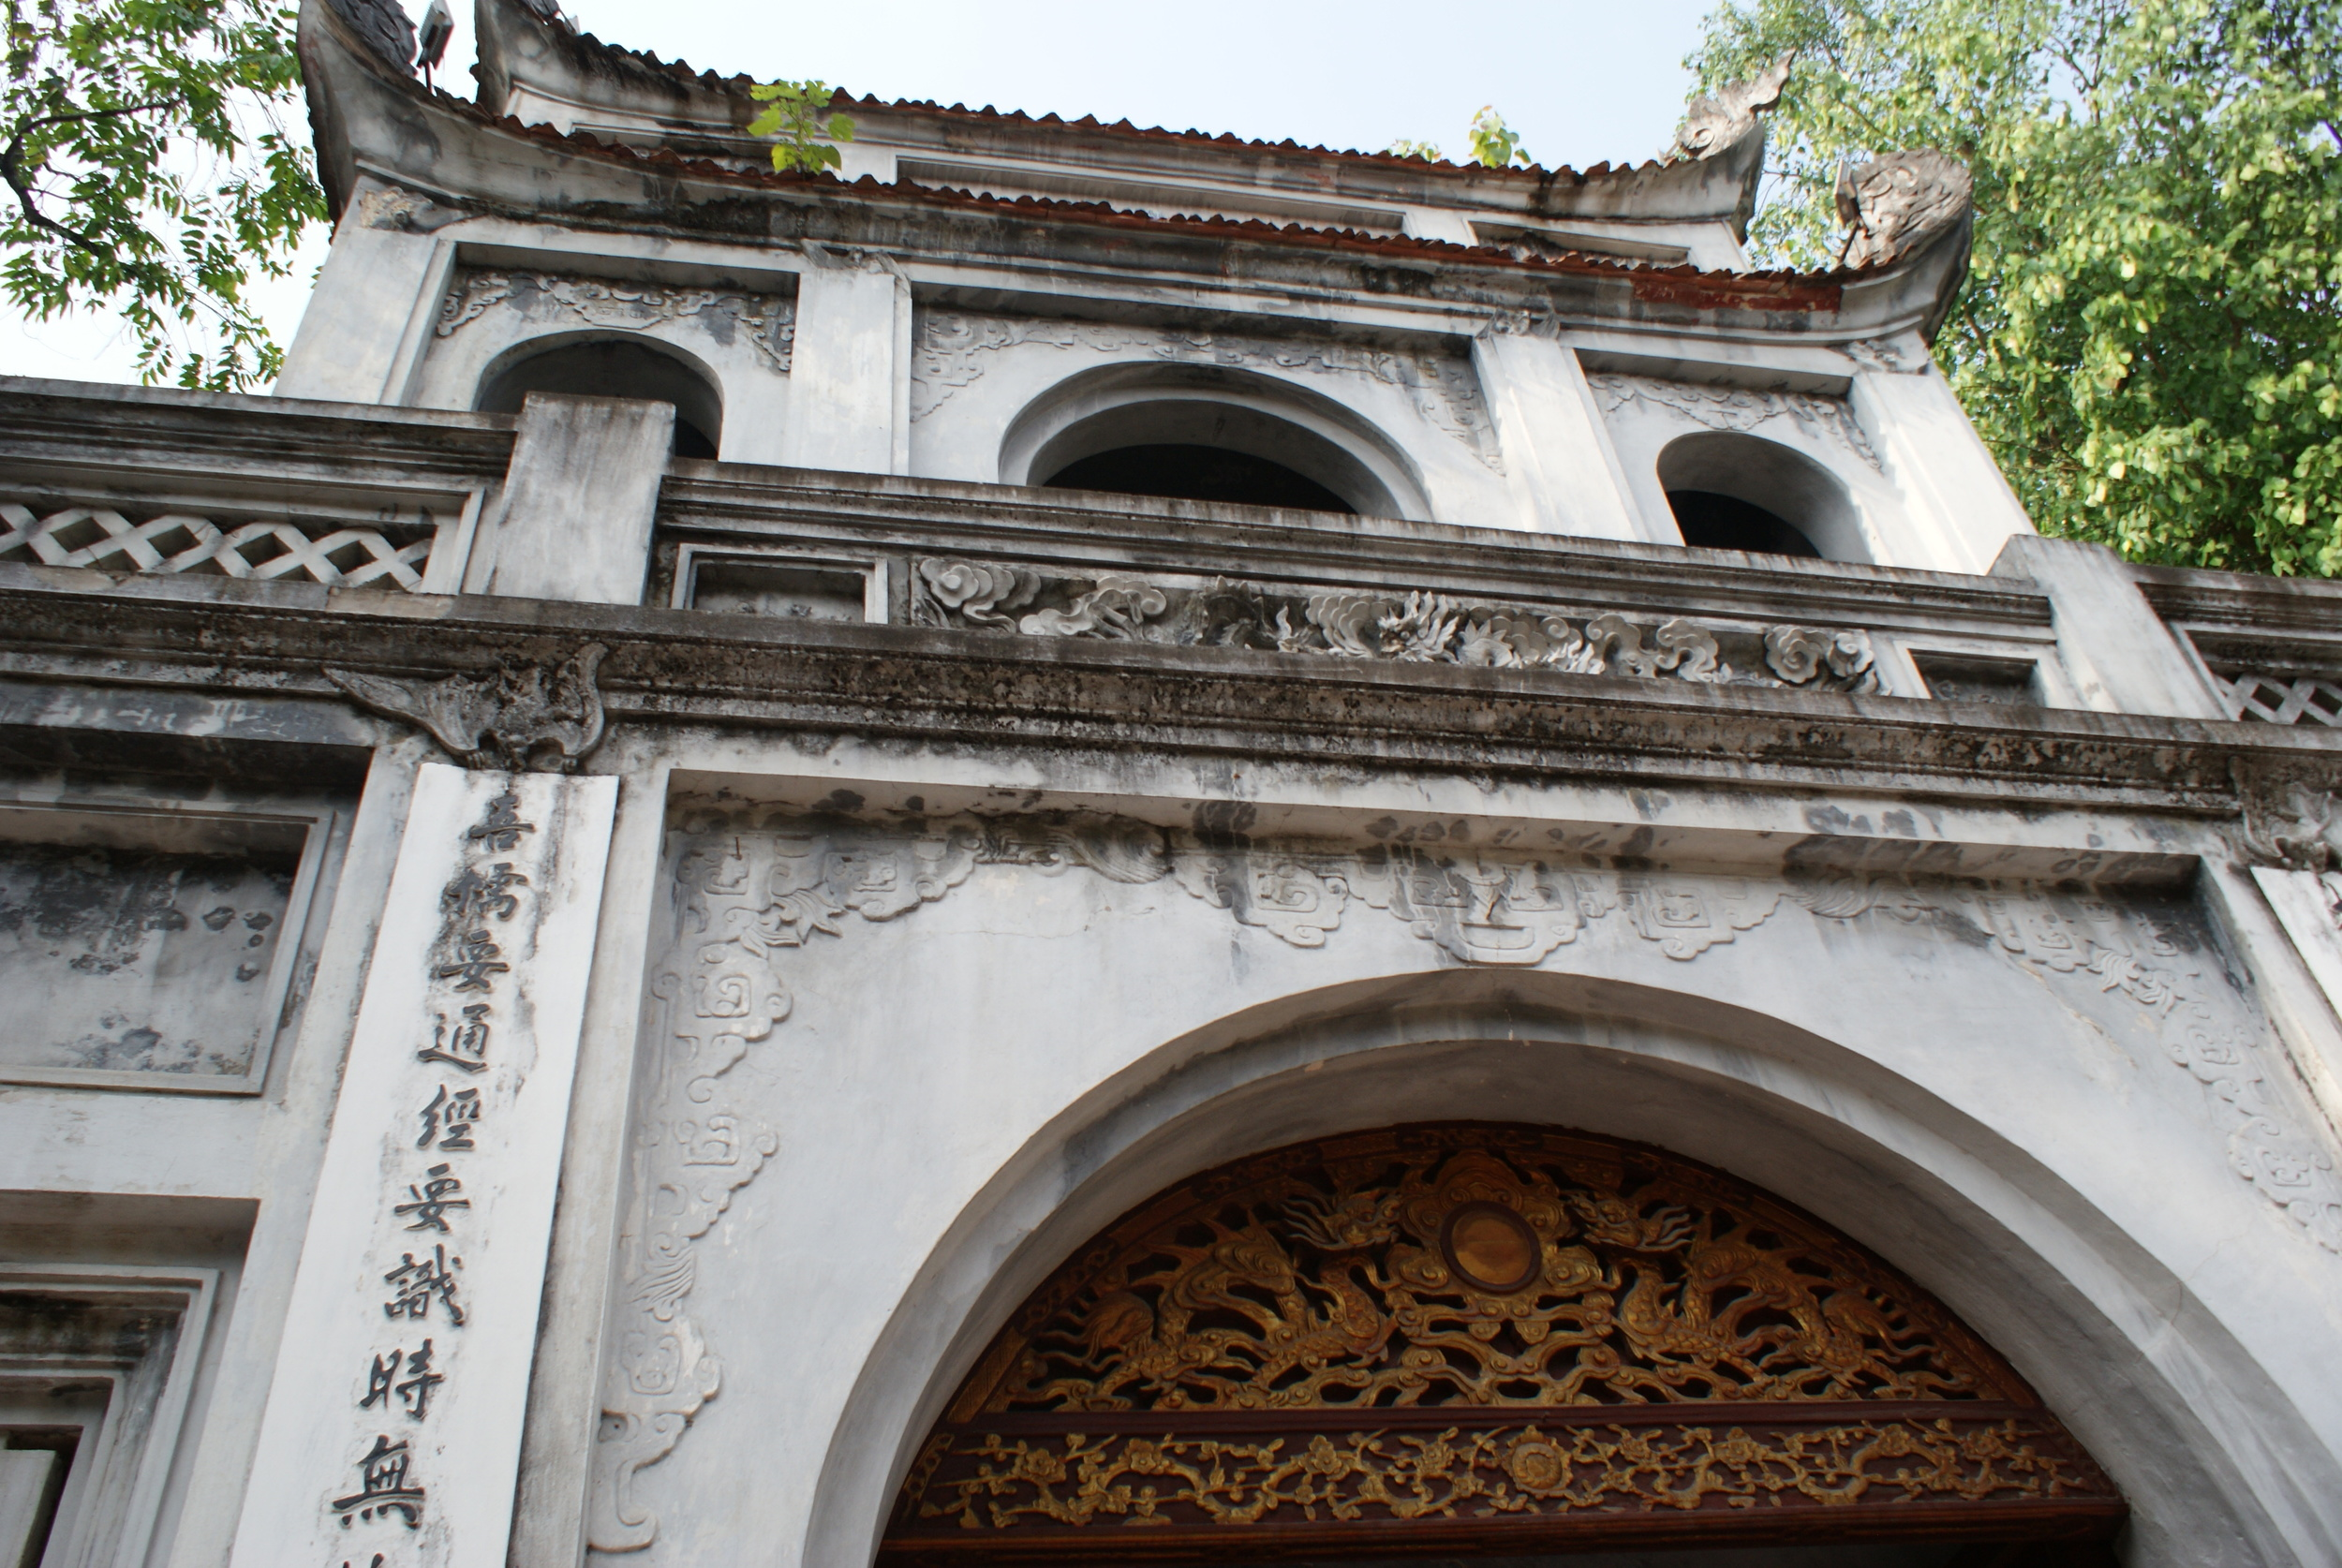 The entrance to the Temple of Literature.